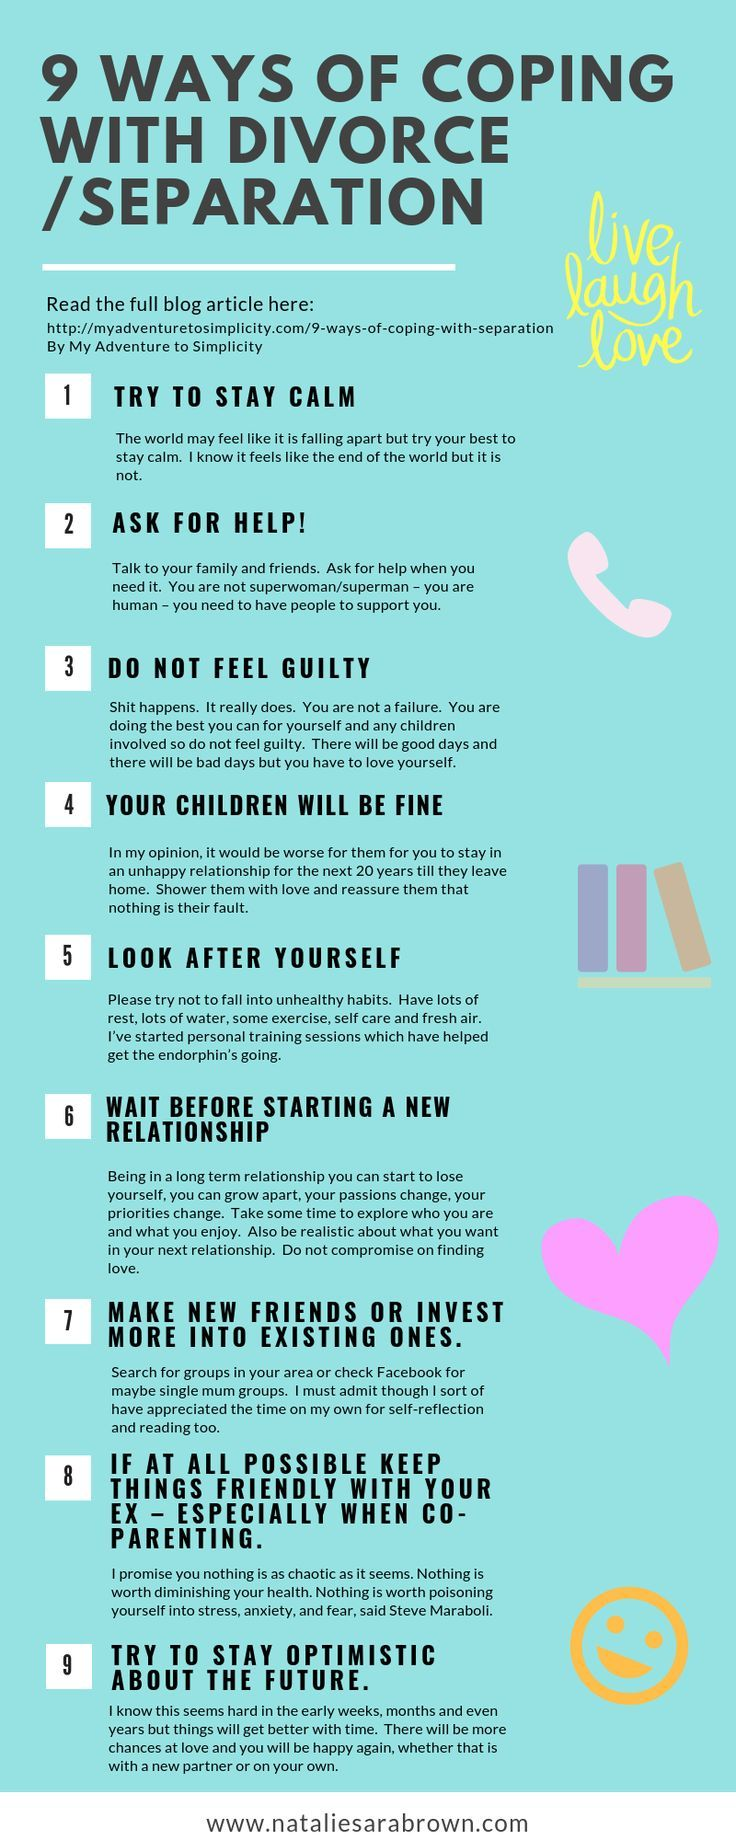 9 Ways of Coping with Divorce or Separation Coping with